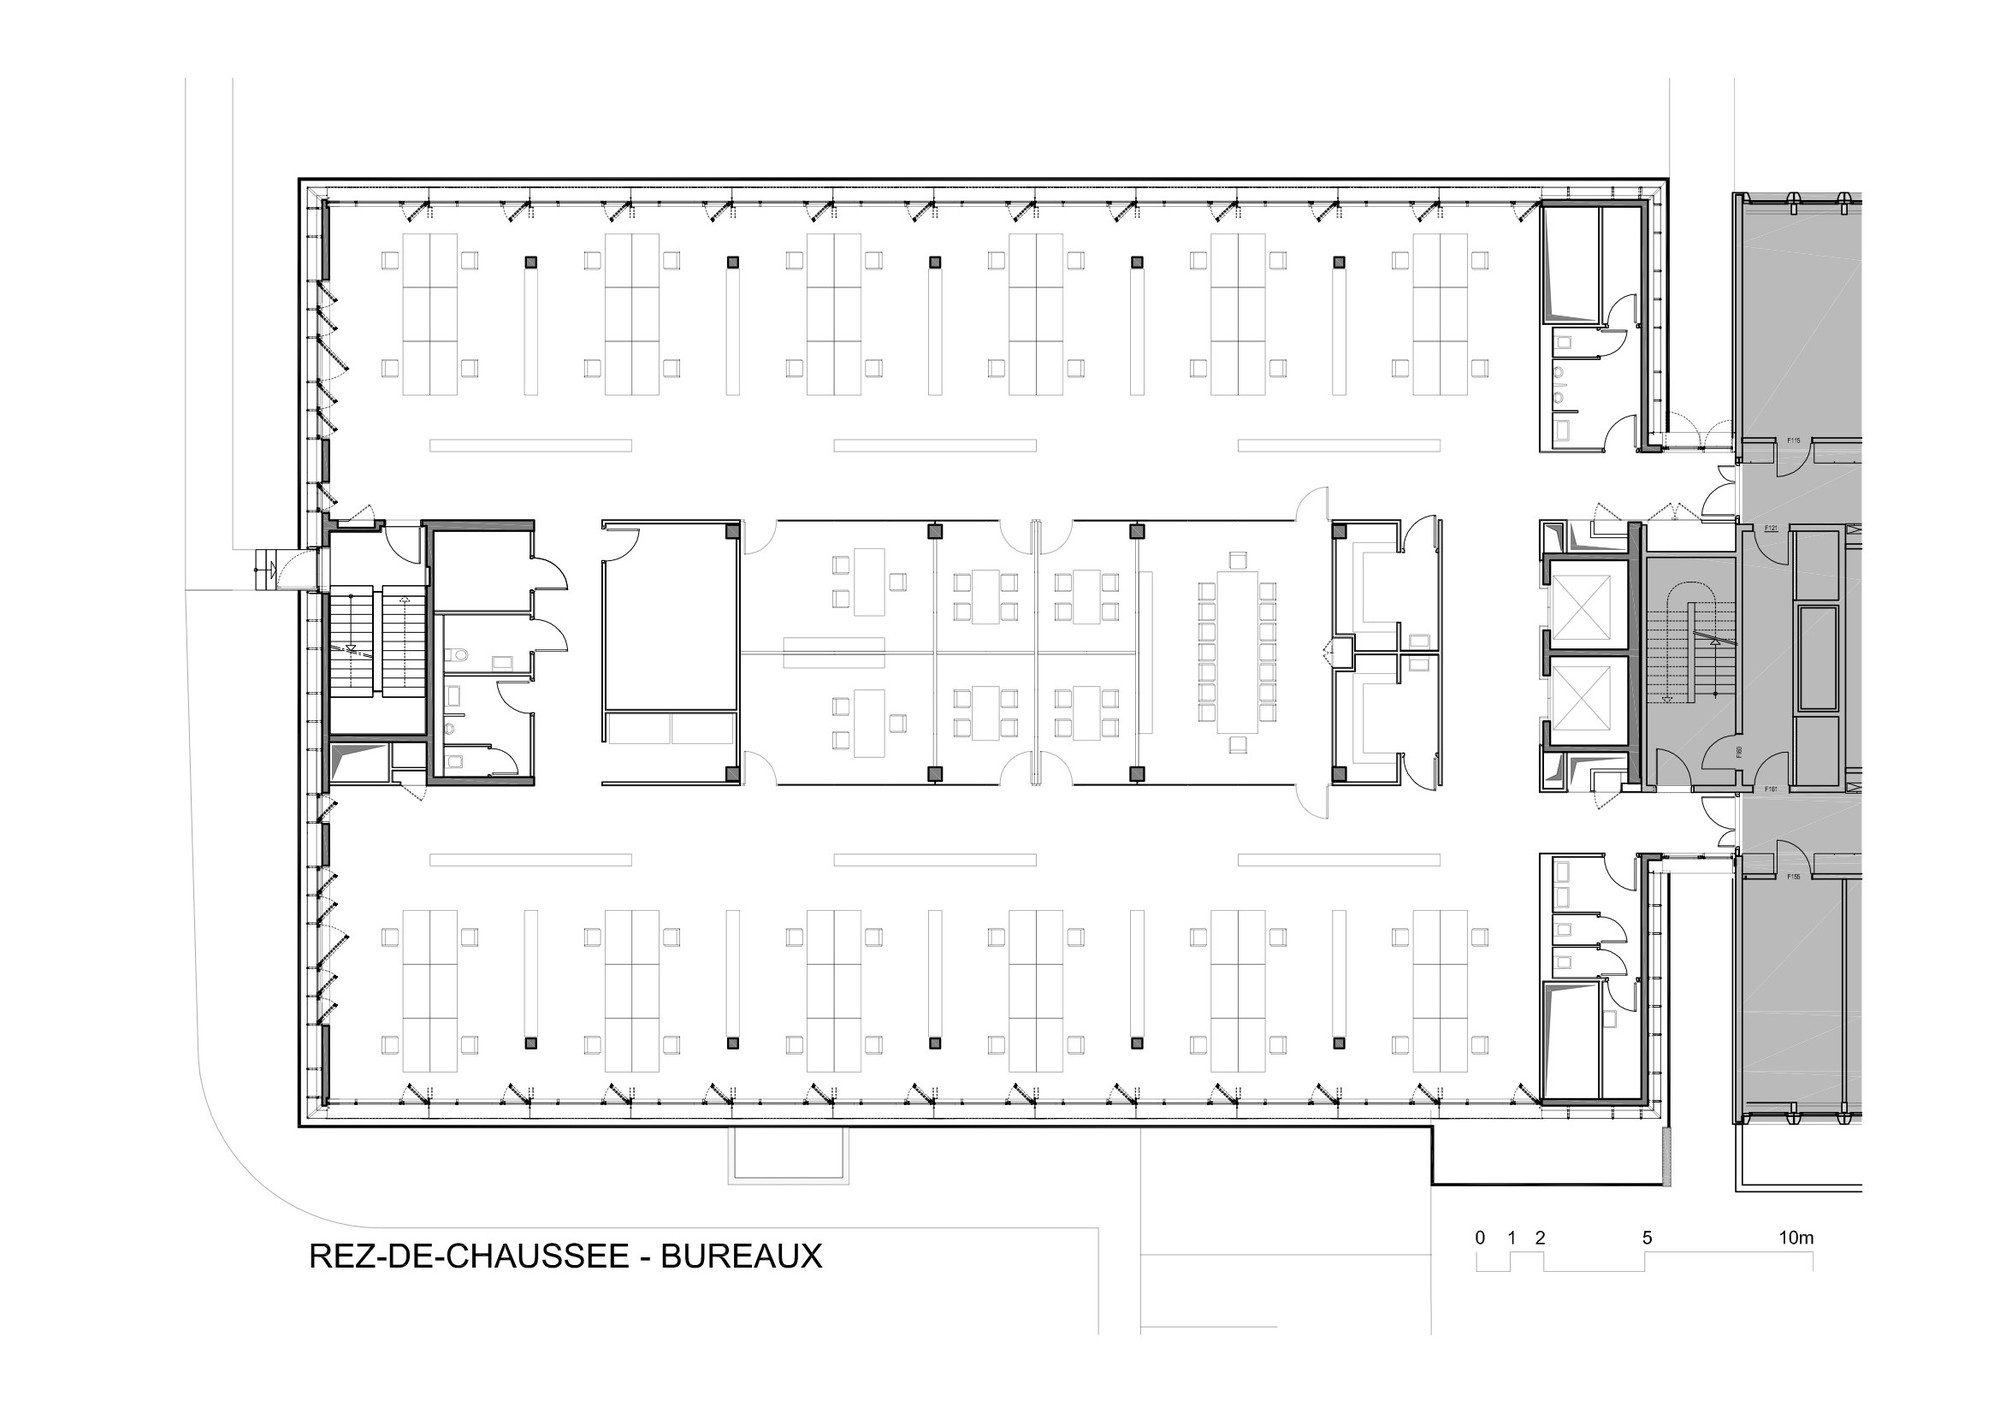 Gallery of extension nestle research center burckhardt Program for floor plans